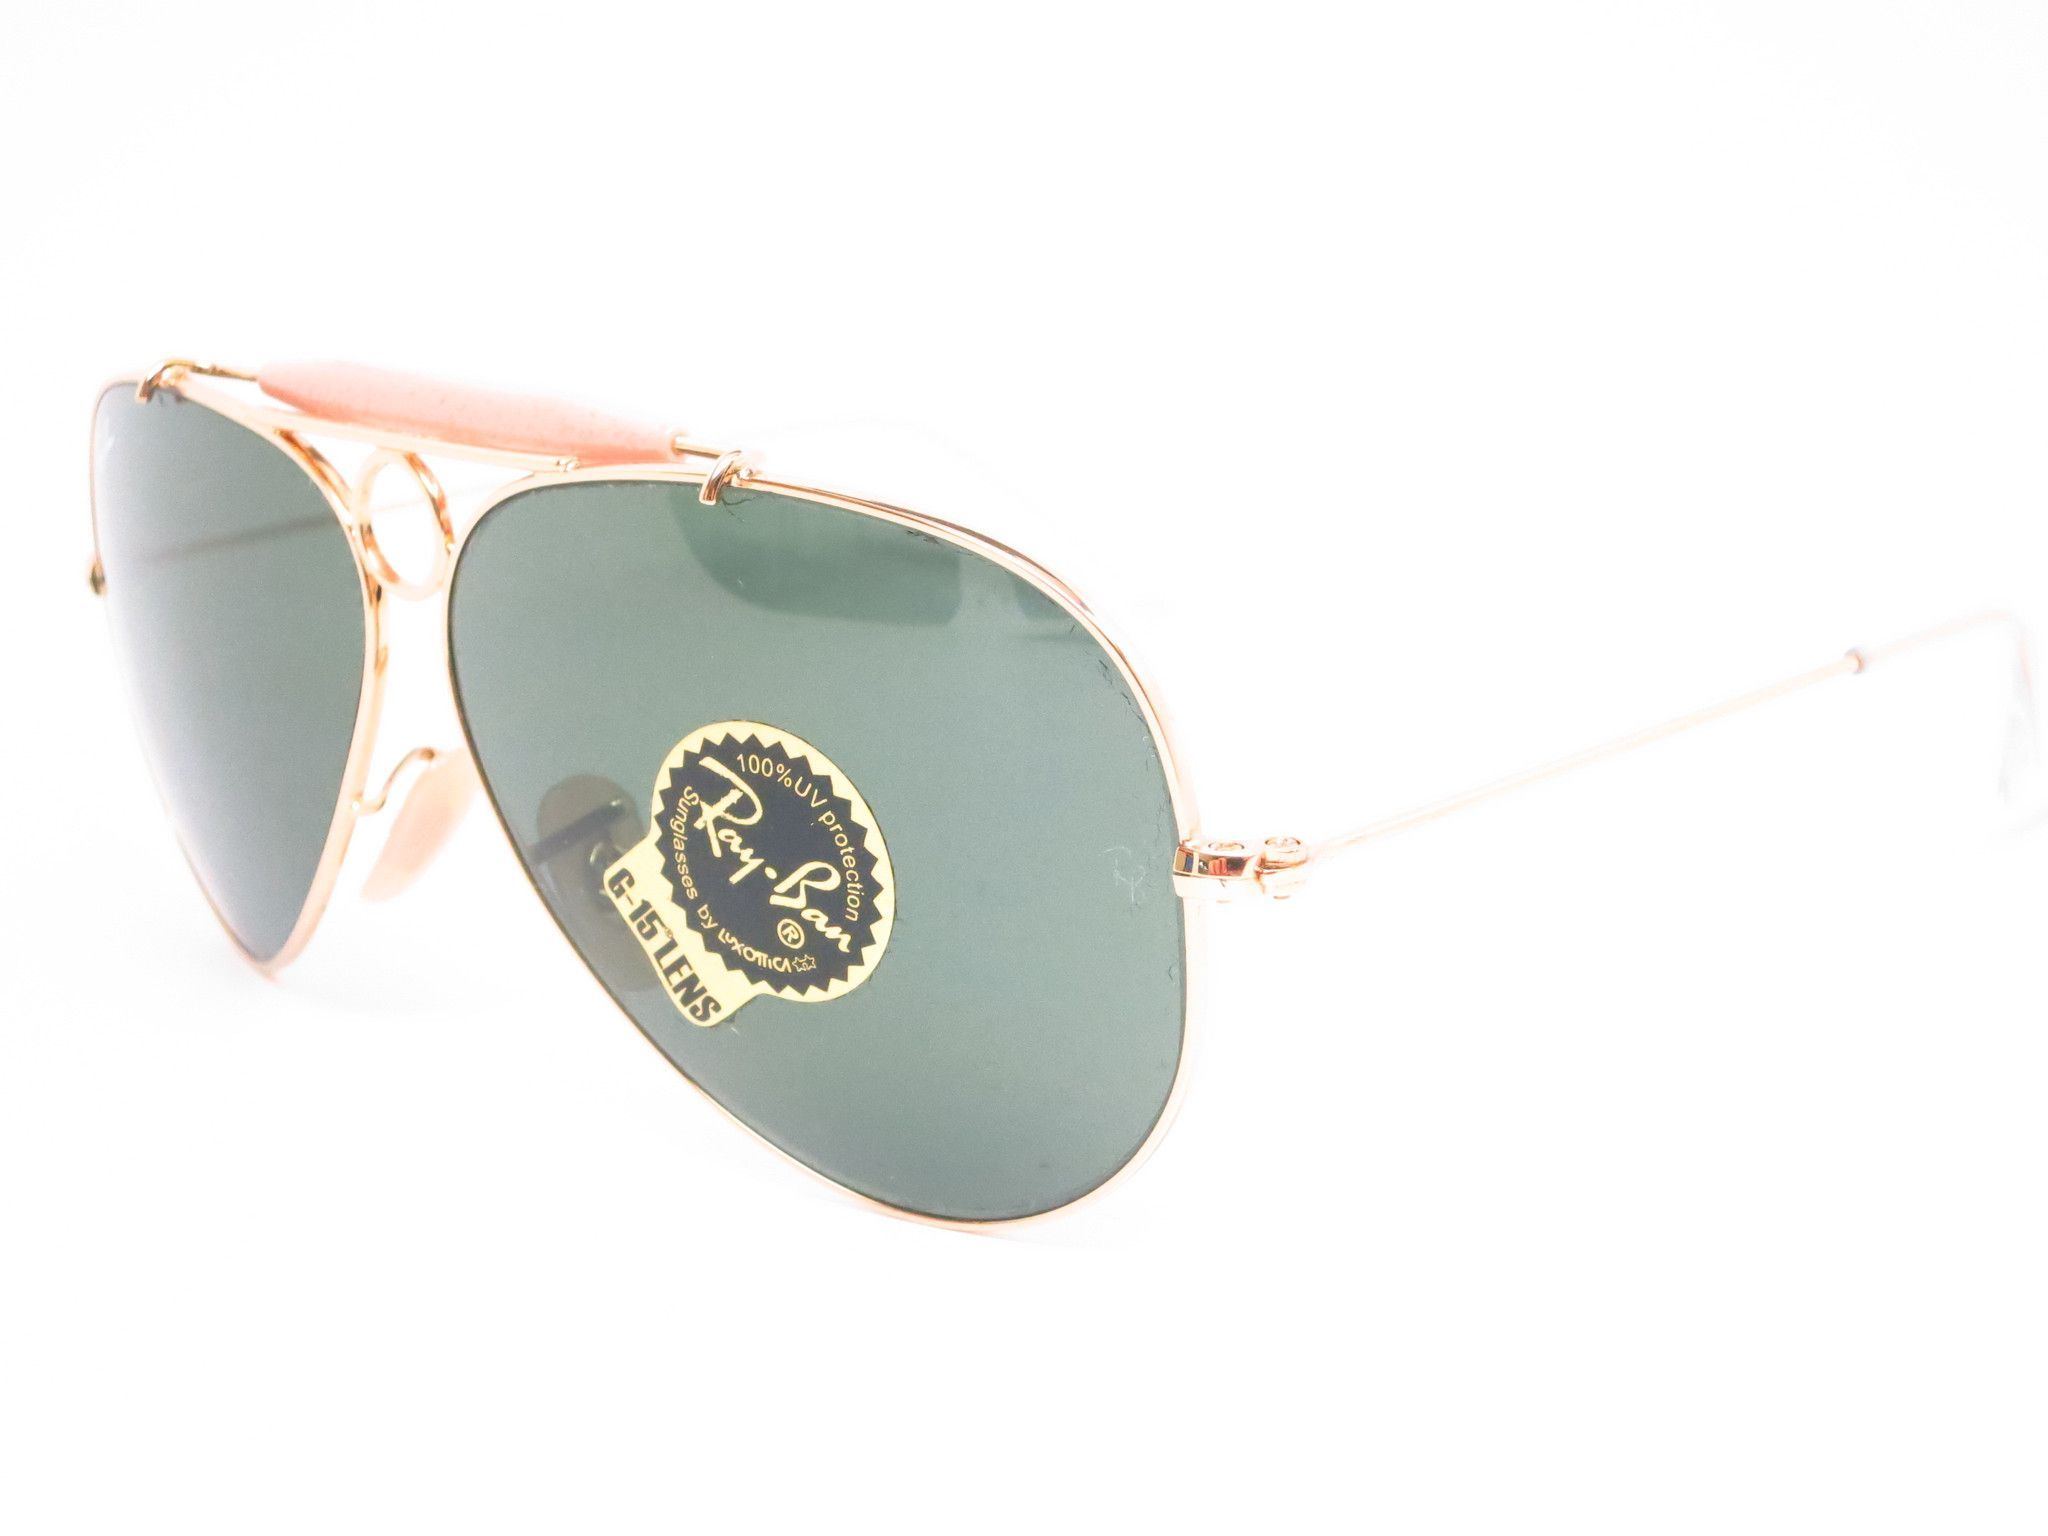 a02d05cf8f New RAY BAN Sunglasses AVIATOR SHOOTER Gold RB 3138 001 Glass G-15 Lenses  58mm